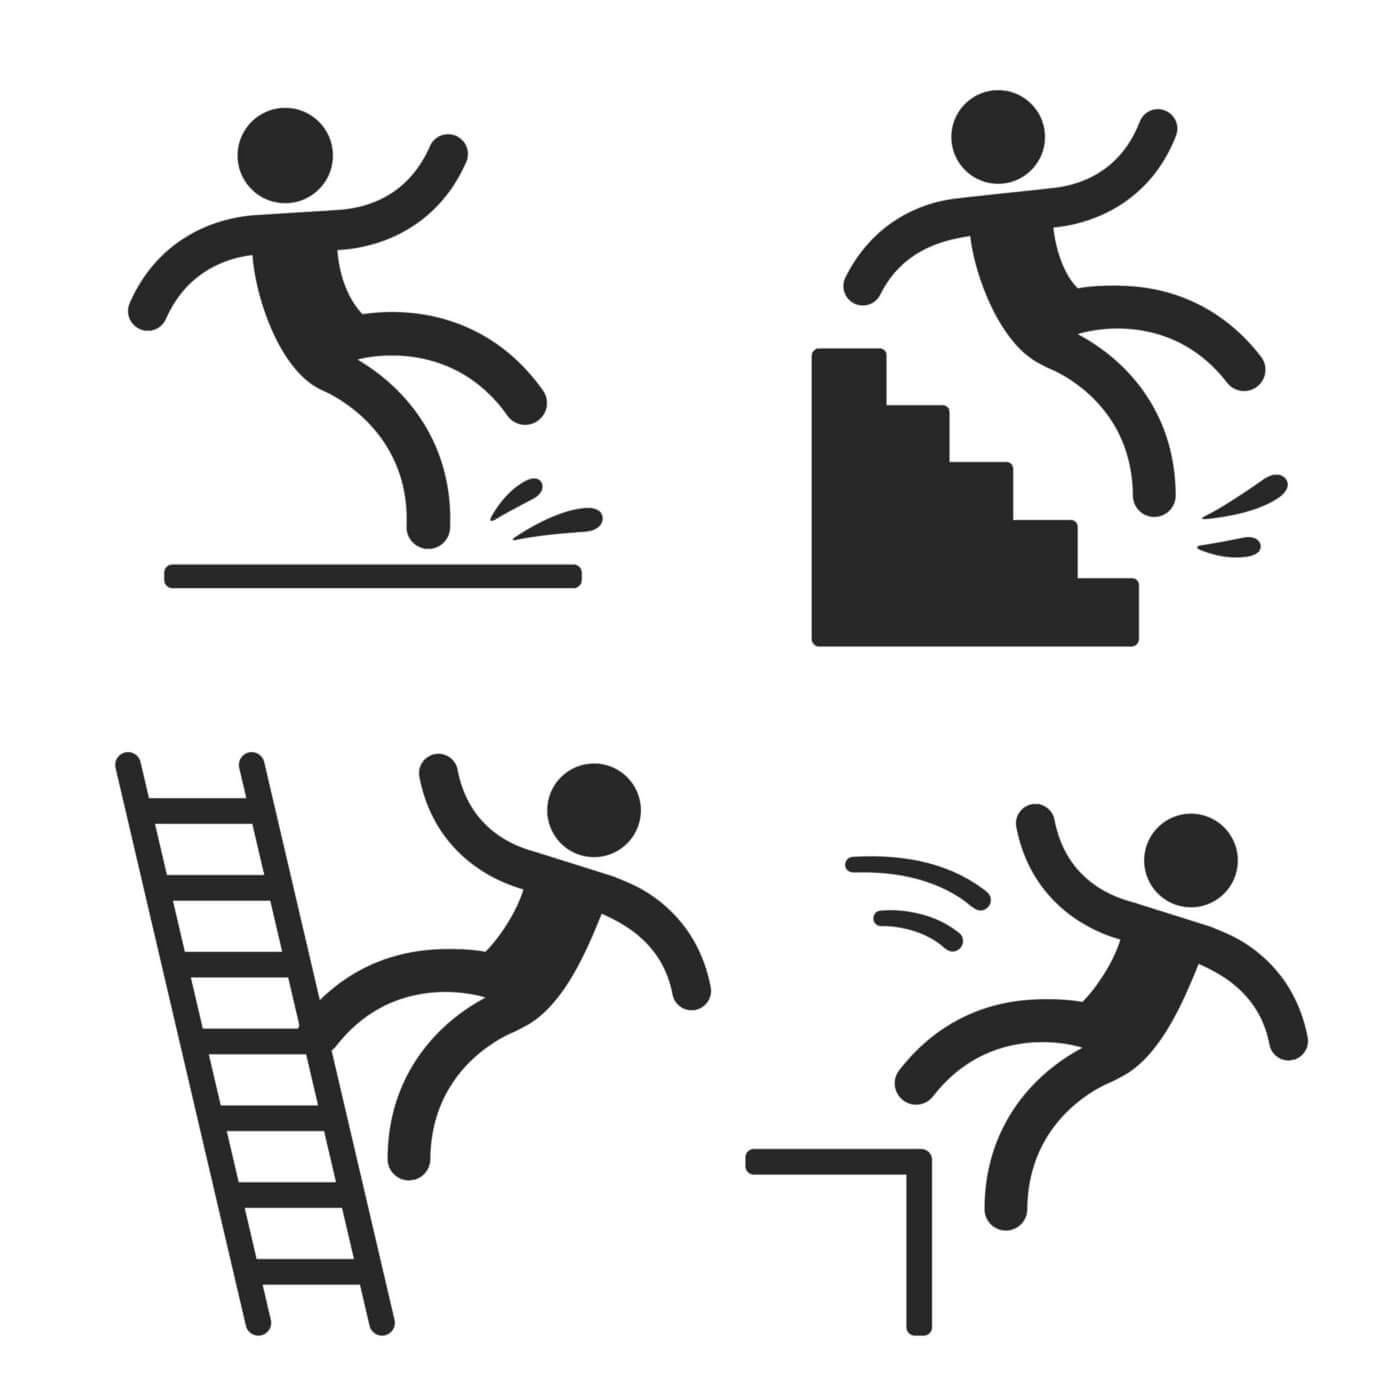 4 black and white cartoon drawings of people falling — off a ladder, slipping on a floor, off a flight of stairs, and off a curb